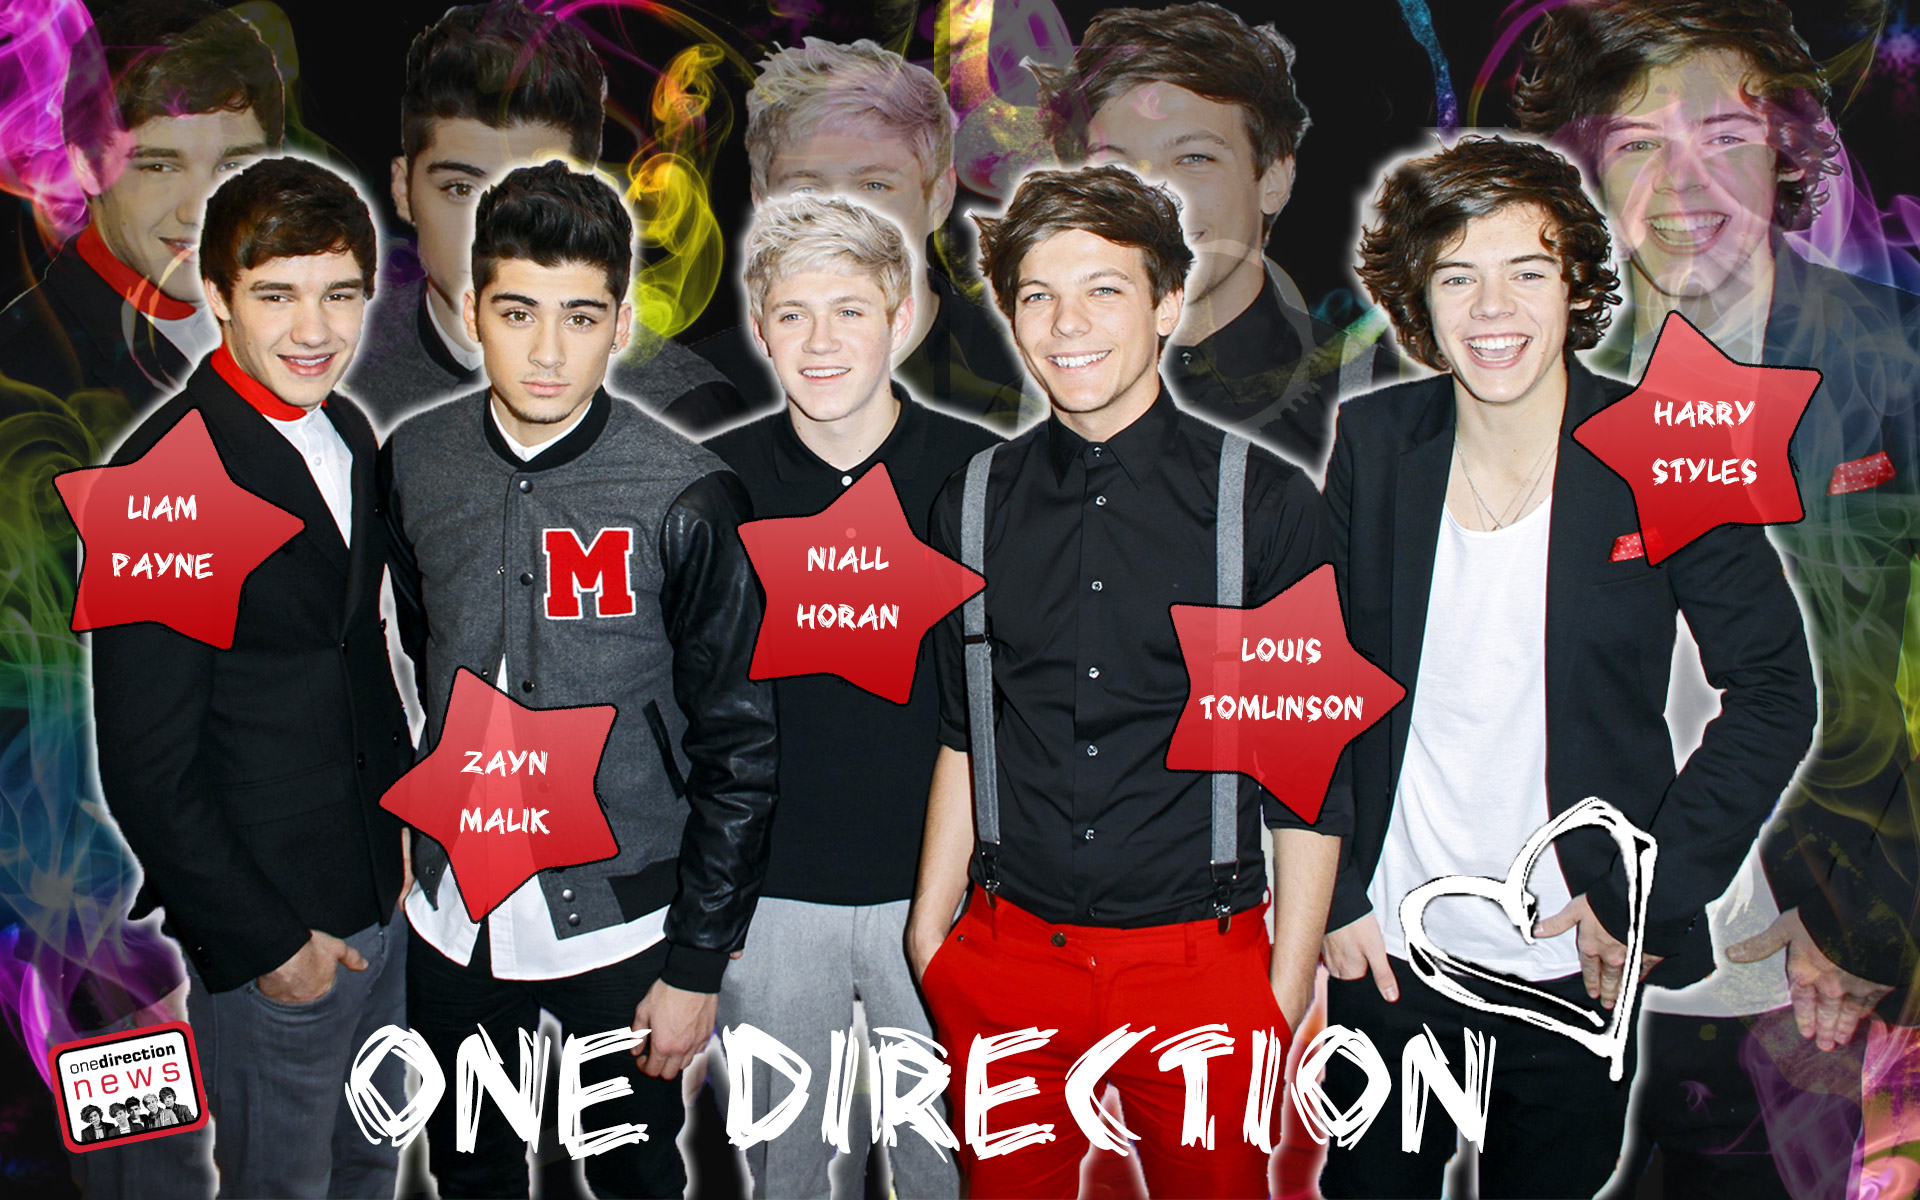 One Direction wallpaper   811335 1920x1200